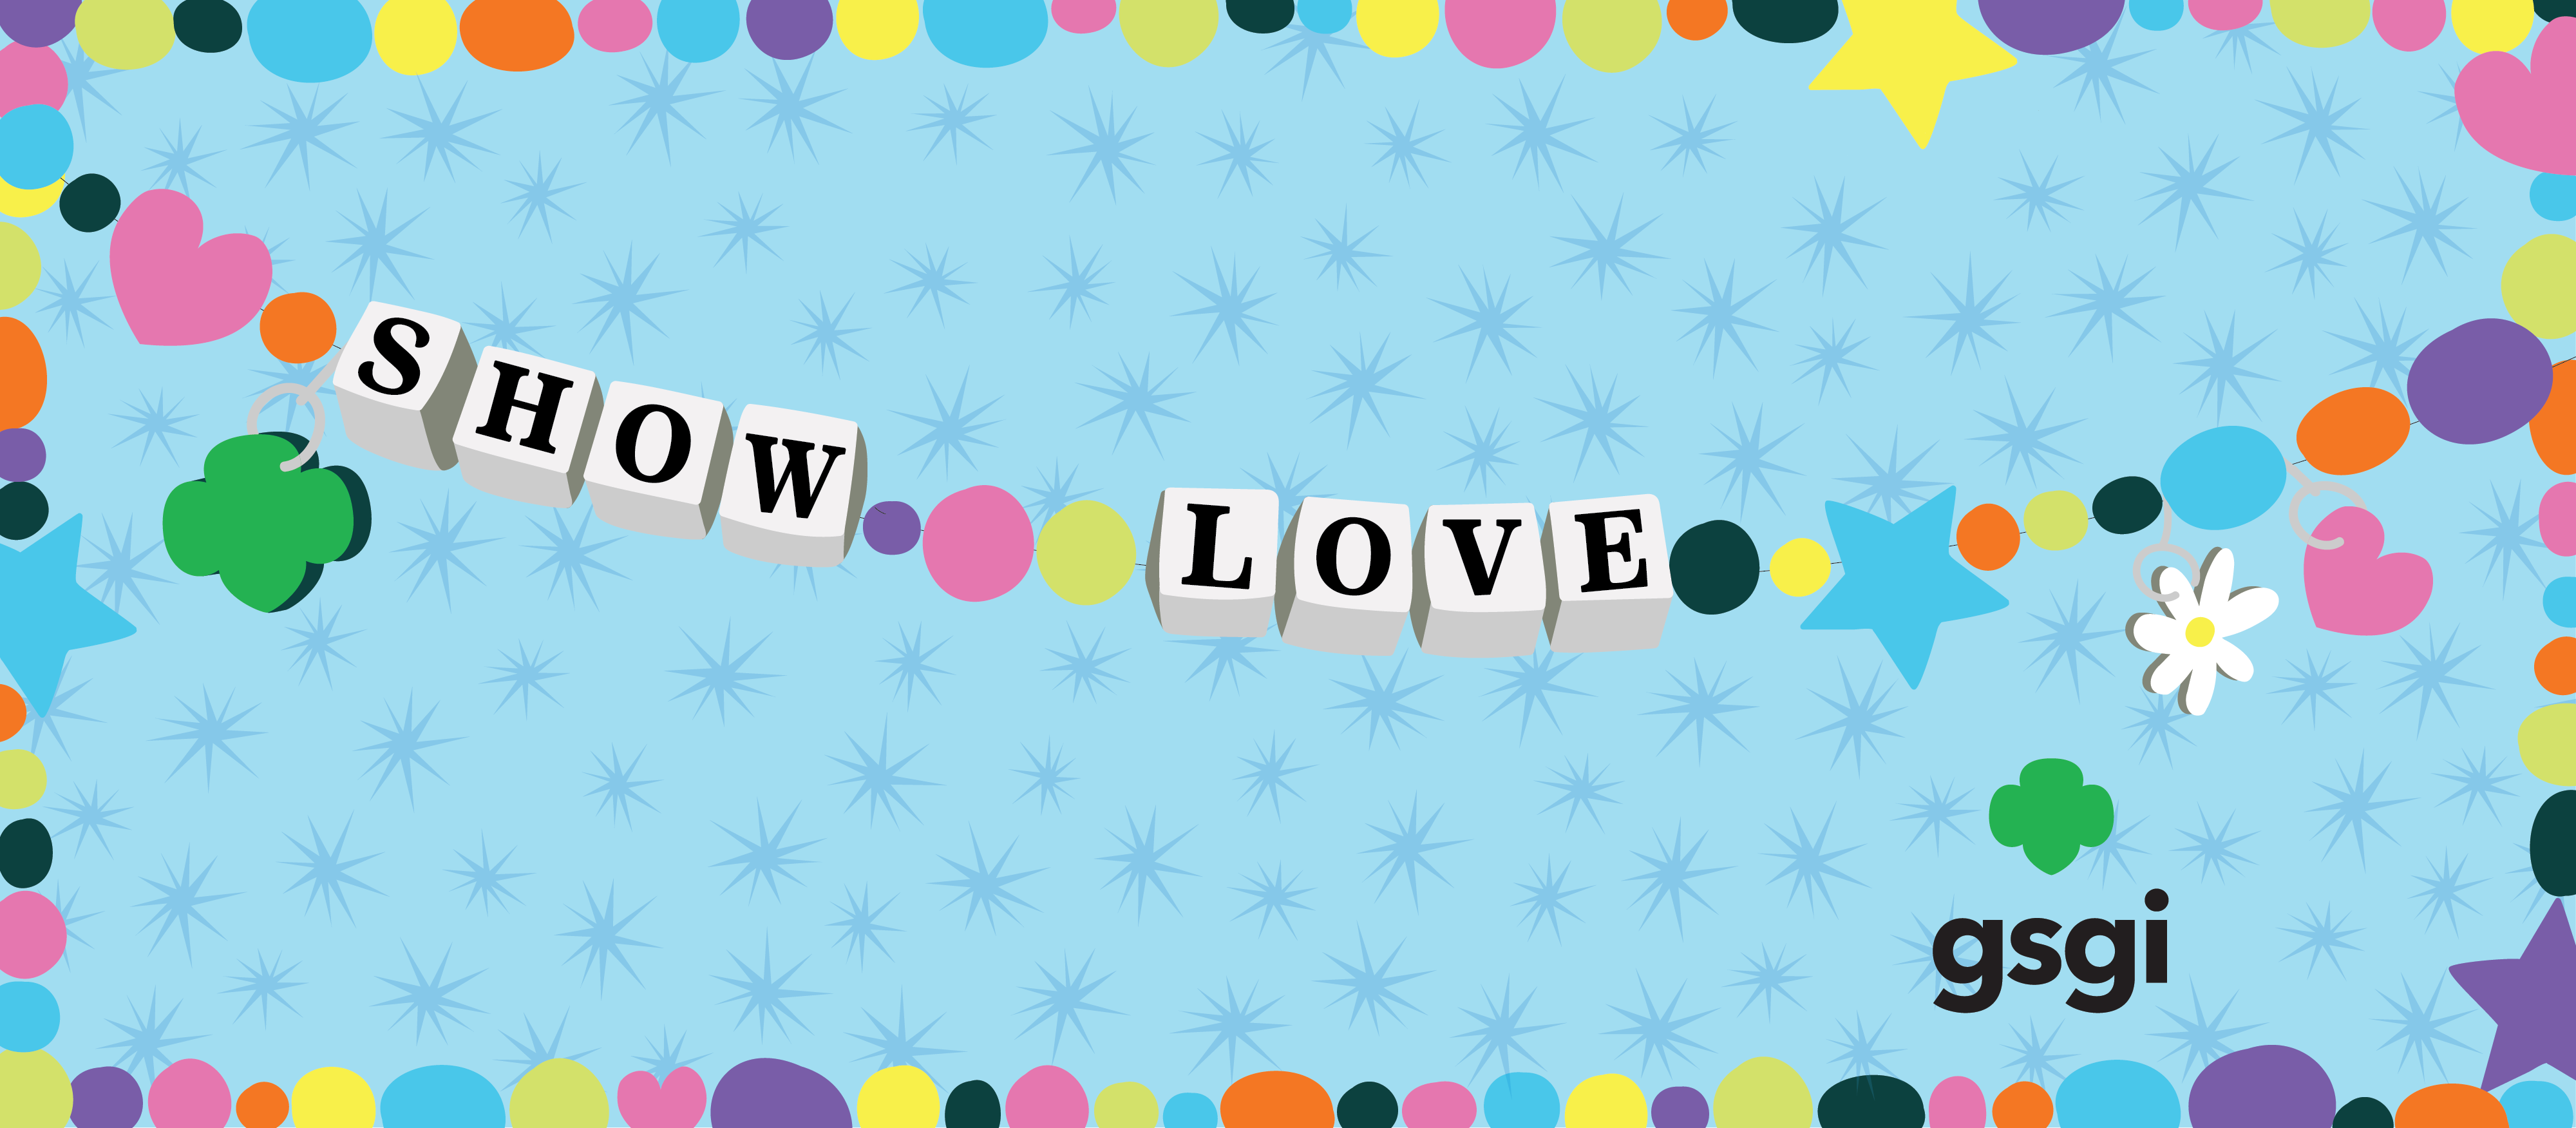 Join Girl Scouts for FREE